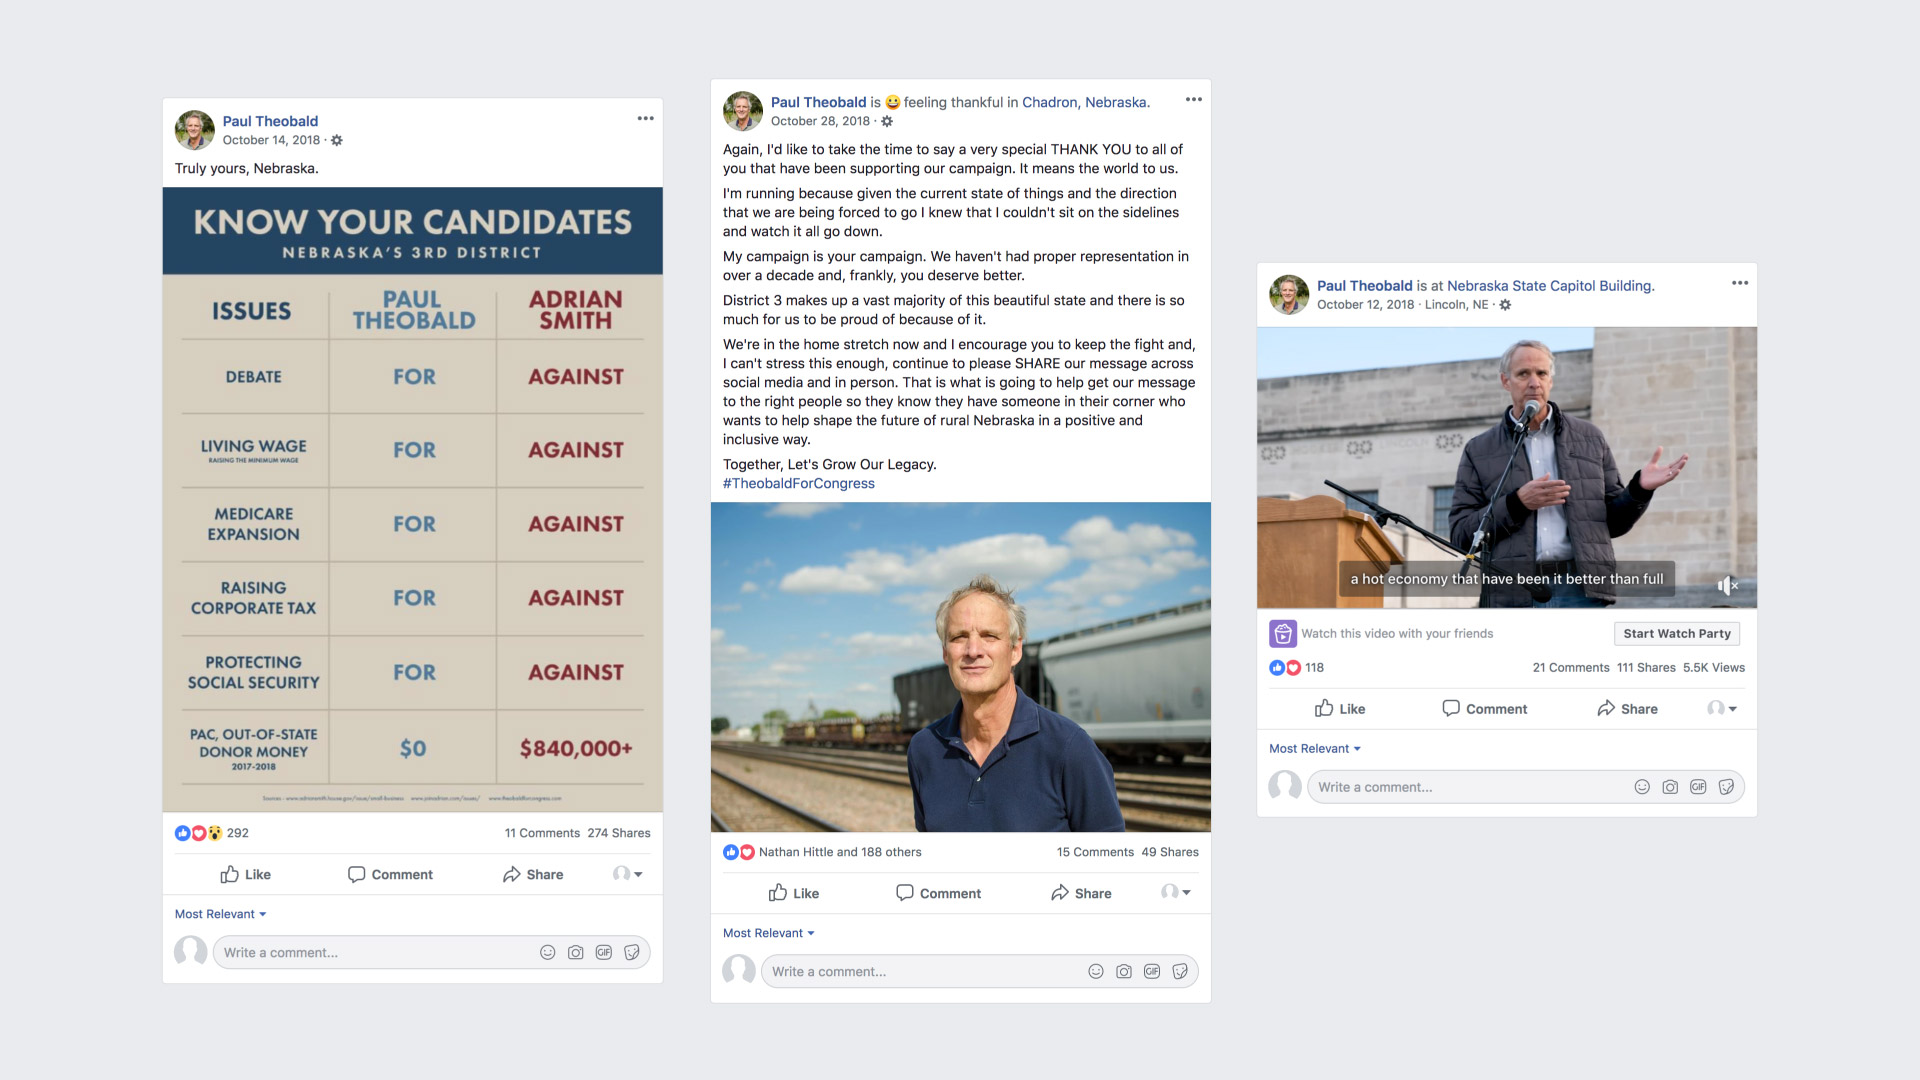 Facebook screenshots detailing Paul Theobald campaign highlights 2